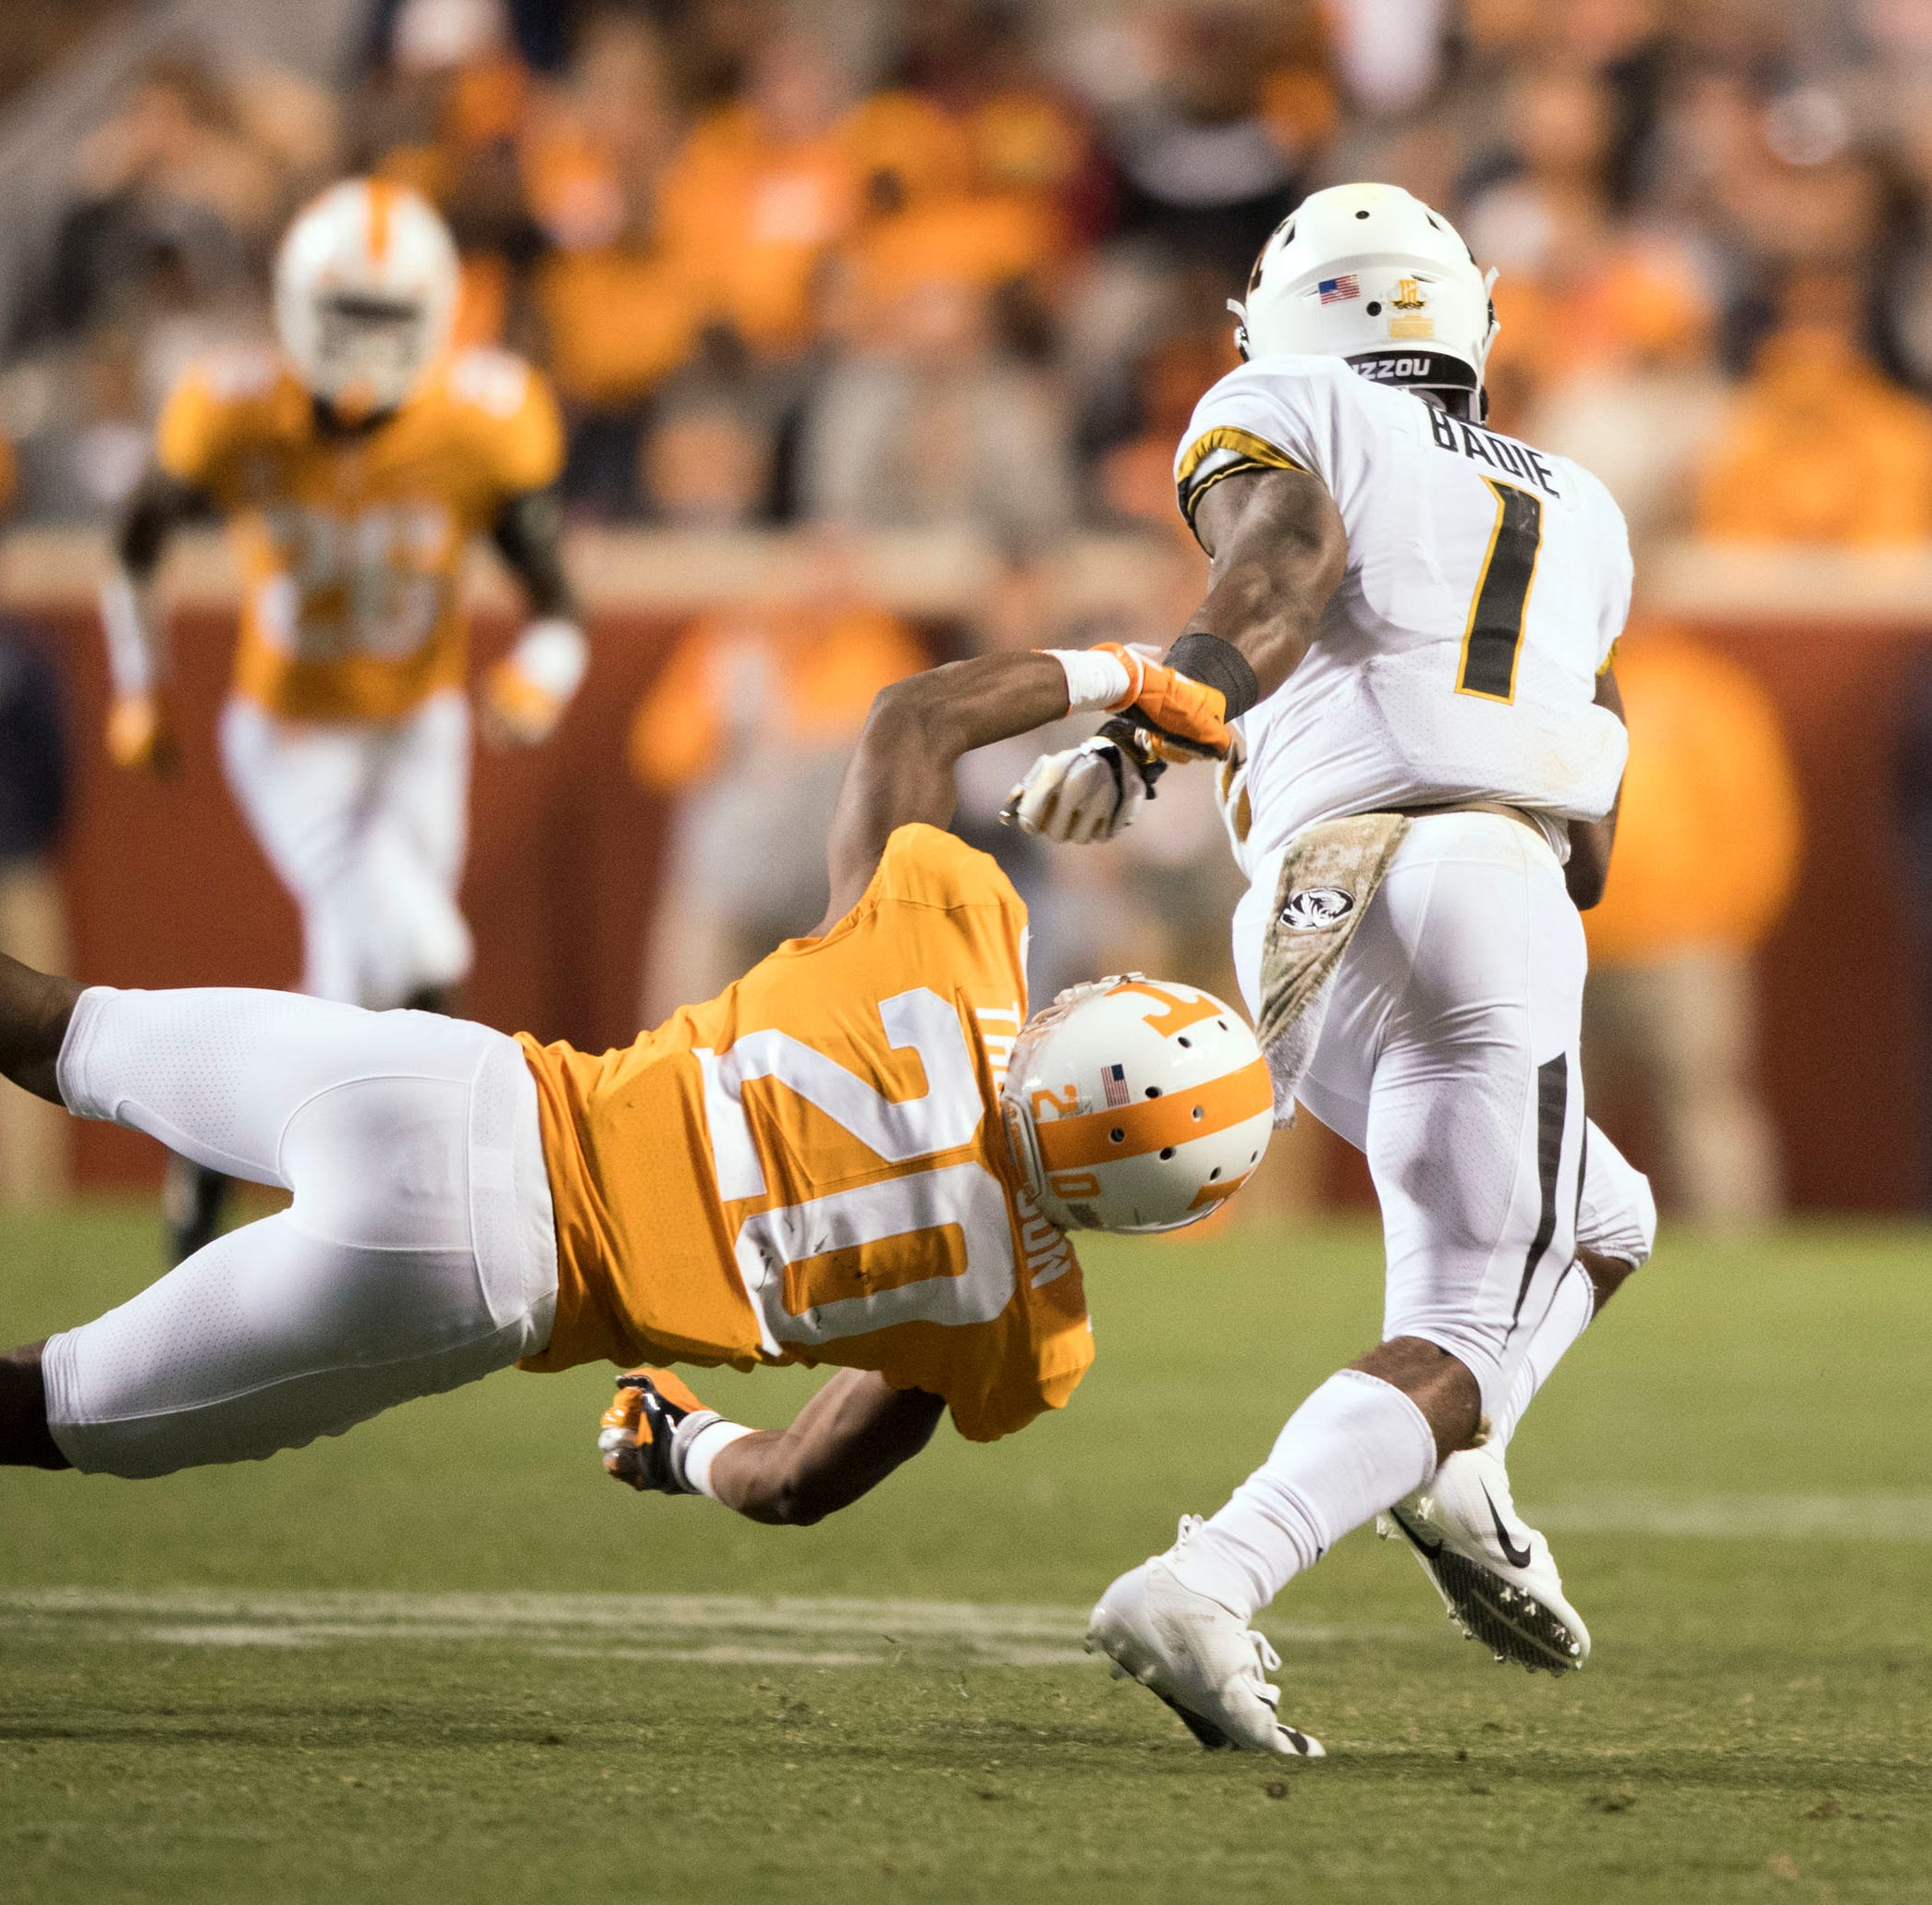 UT Vols football: What went wrong for Tennessee defense vs Missouri, Derek Dooley